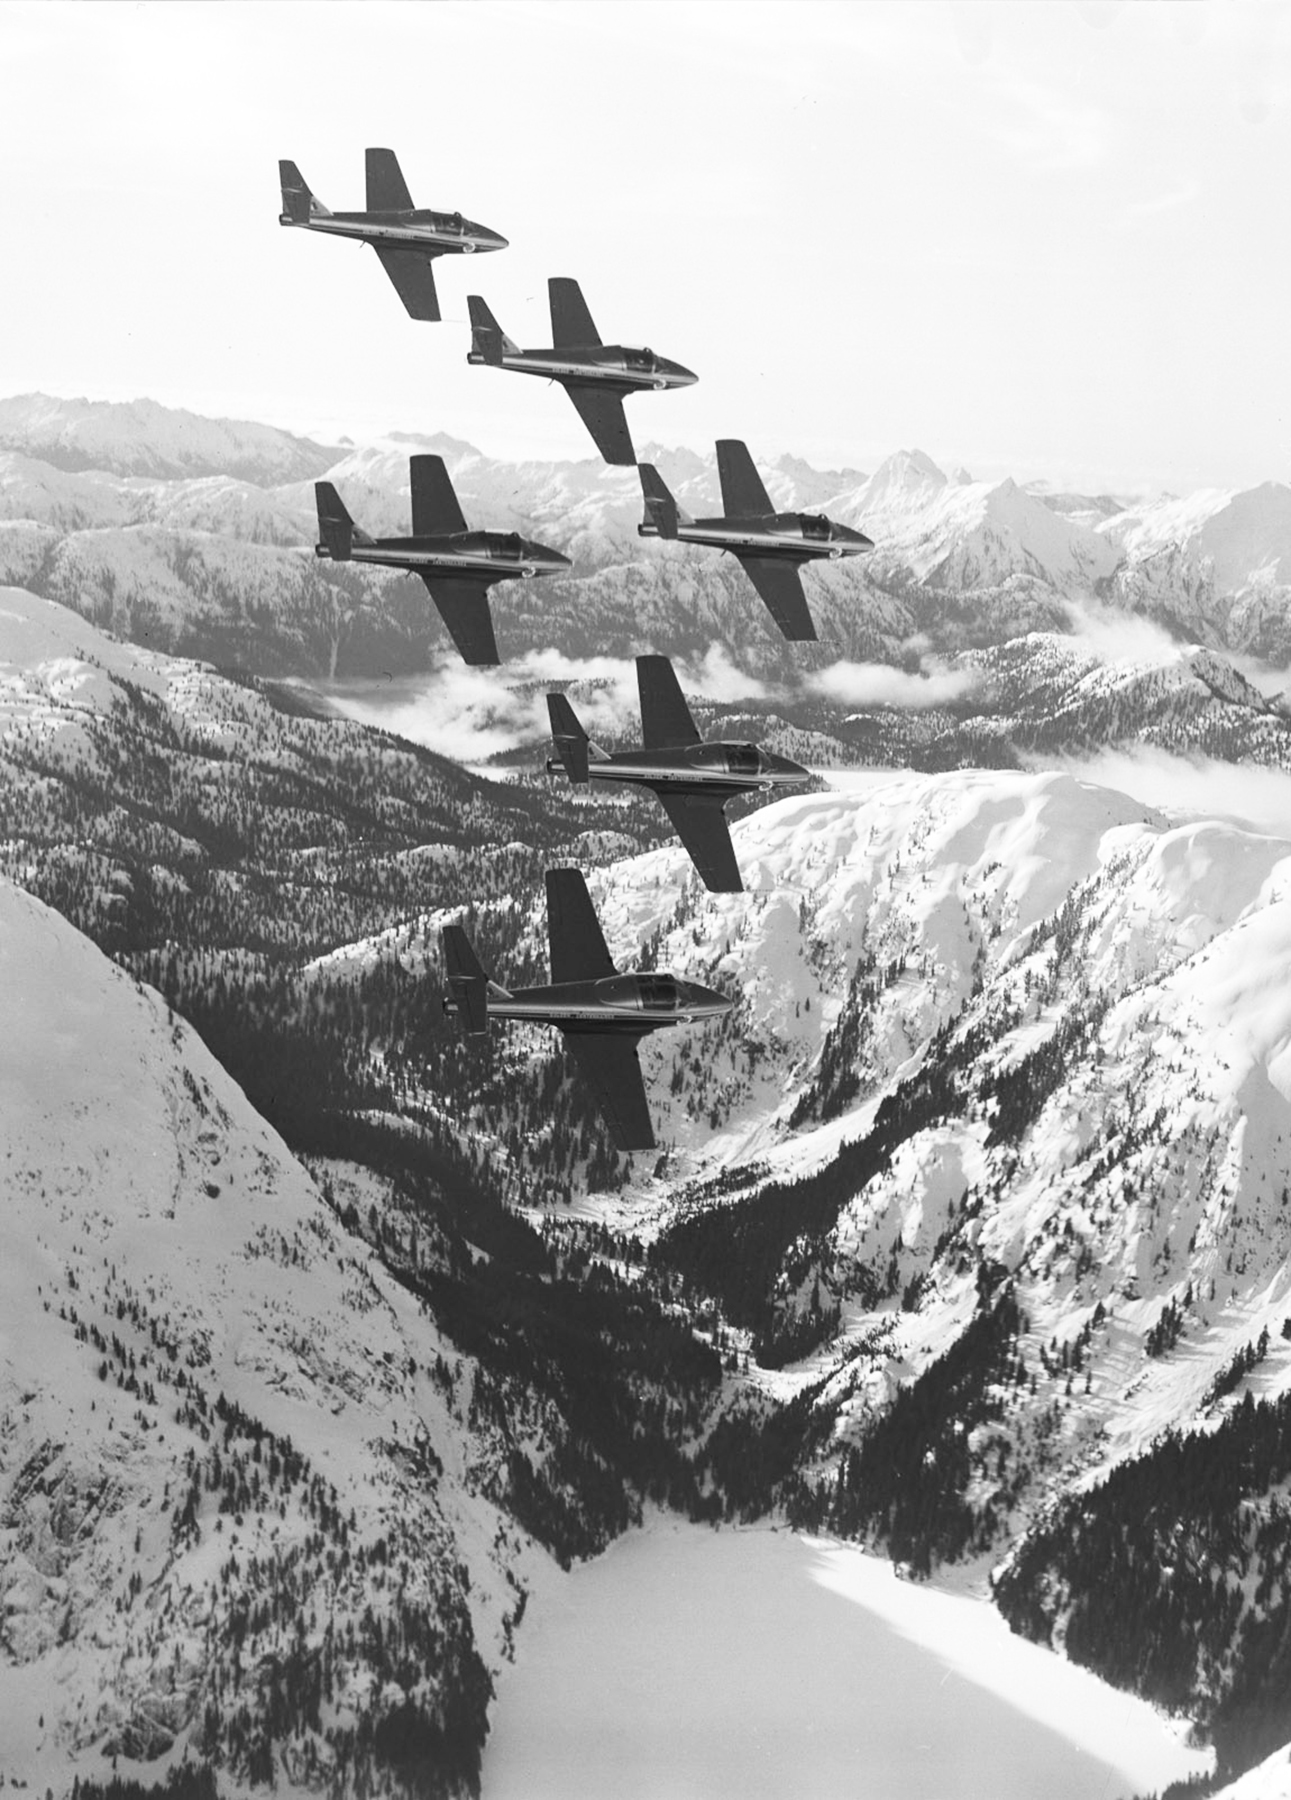 On February 4, 1967, the Canadian Armed Forces Golden Centennaires execute a tight formation of six over the Rocky Mountains near Comox, British Columbia. PHOTO: DND Archives, WG67-13-4